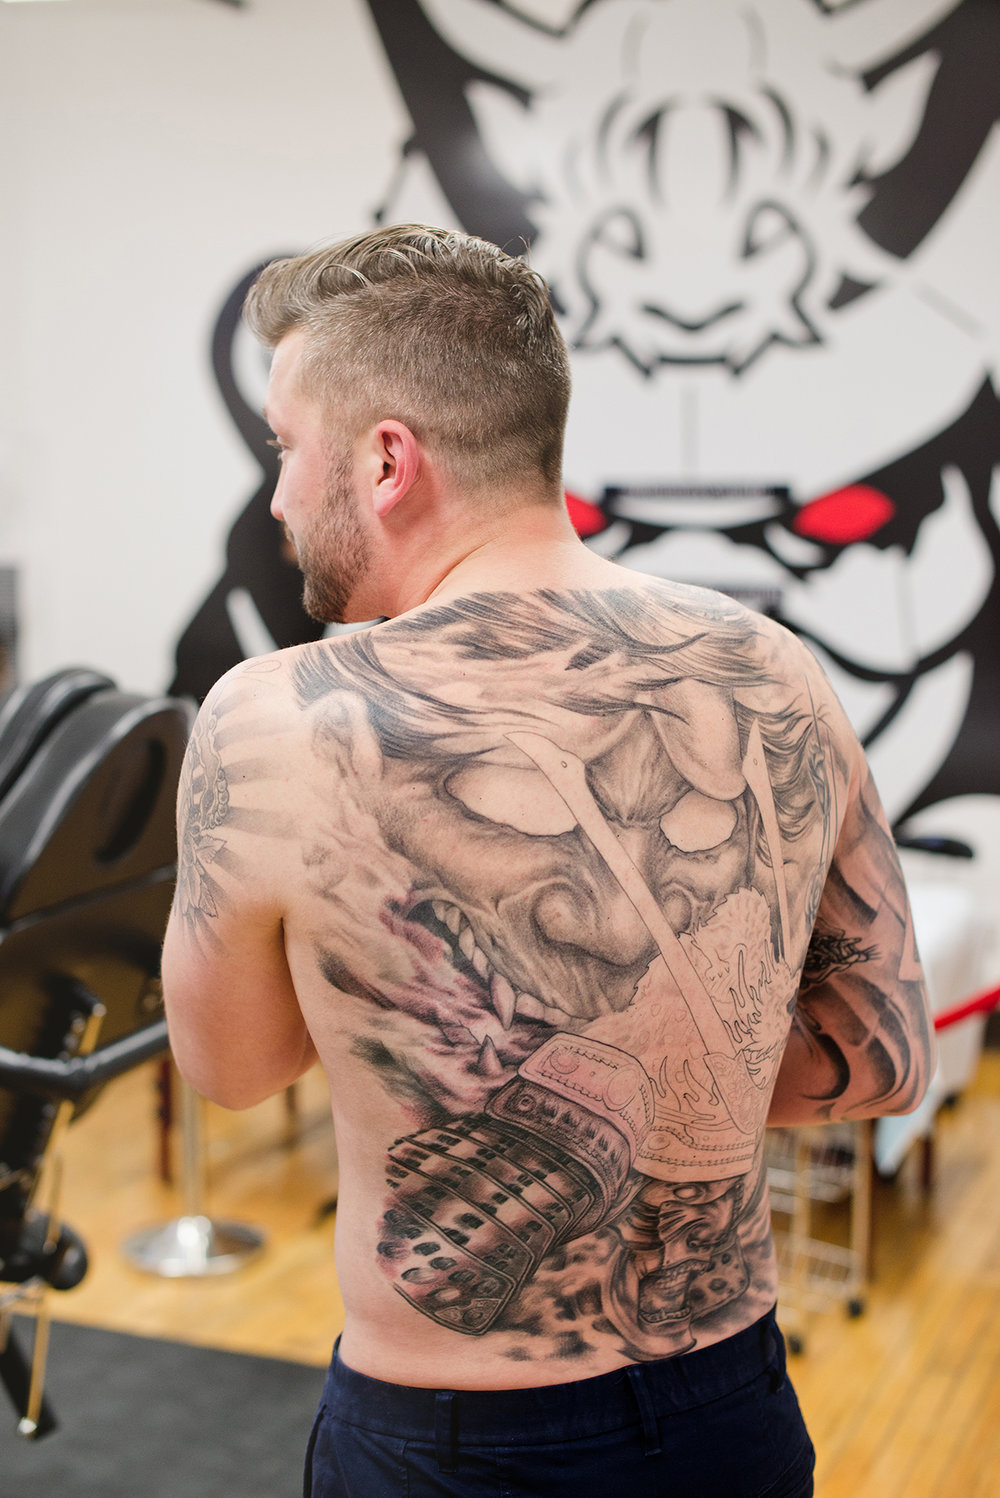 34 Kai 7th Samurai tattoos & Hennessy Scott Campbell pop up event.jpg